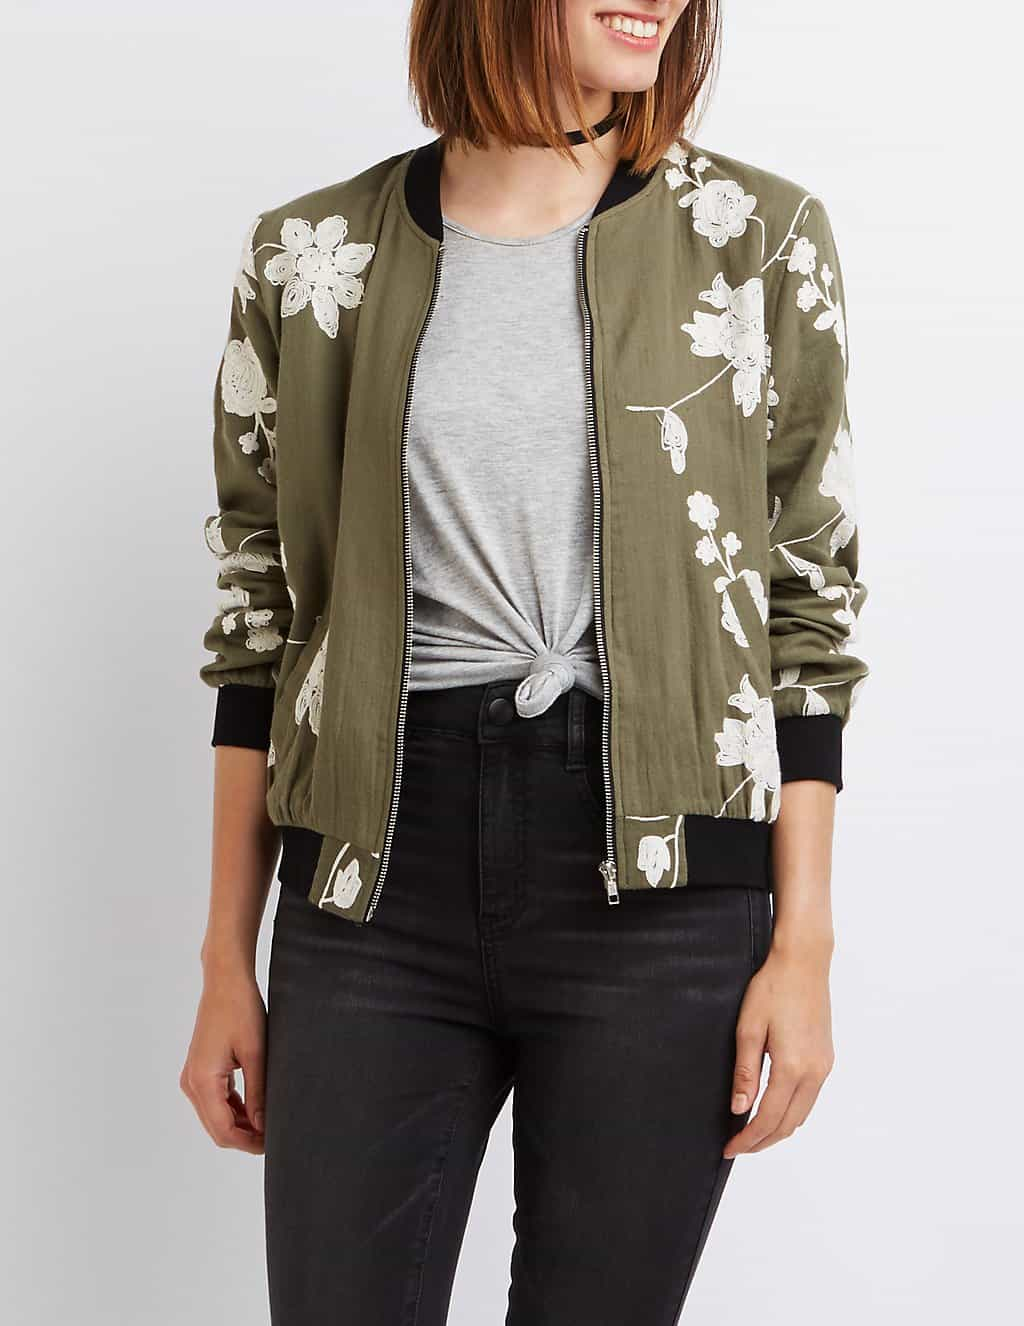 embroidered clothes - green and white bomber jacket with embroidery